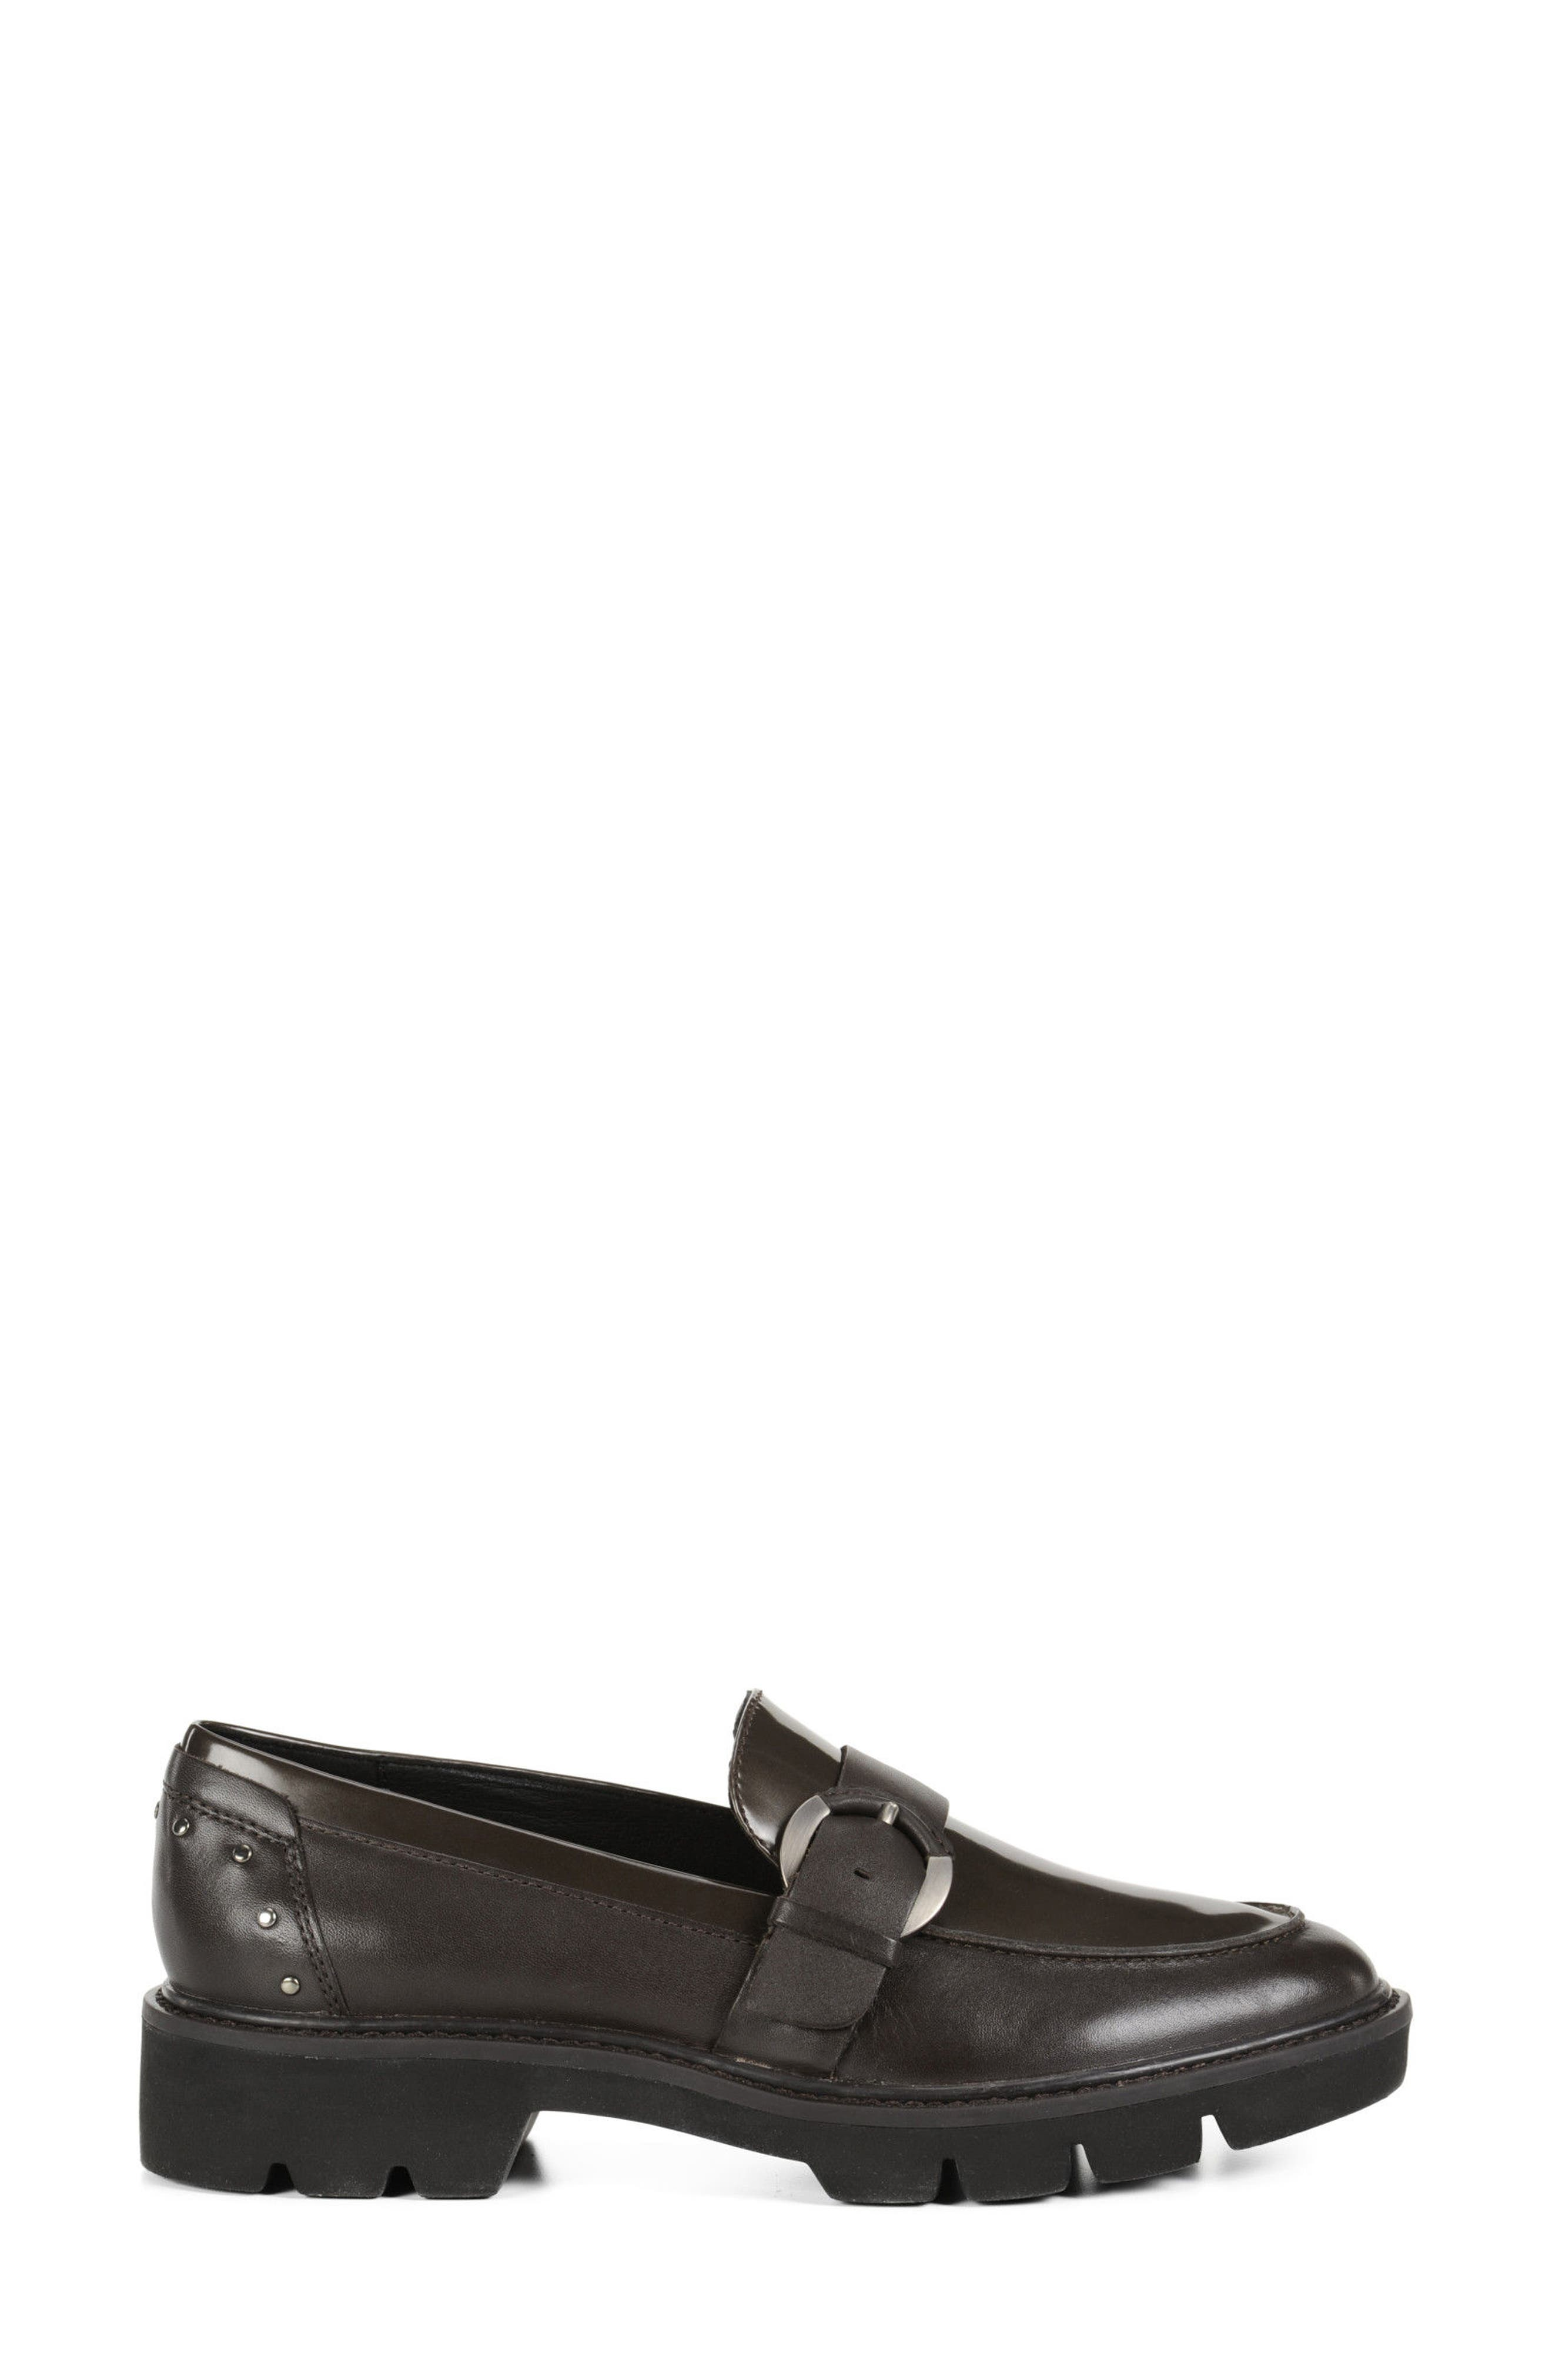 Quinlynn Loafer,                             Alternate thumbnail 3, color,                             Brown Leather